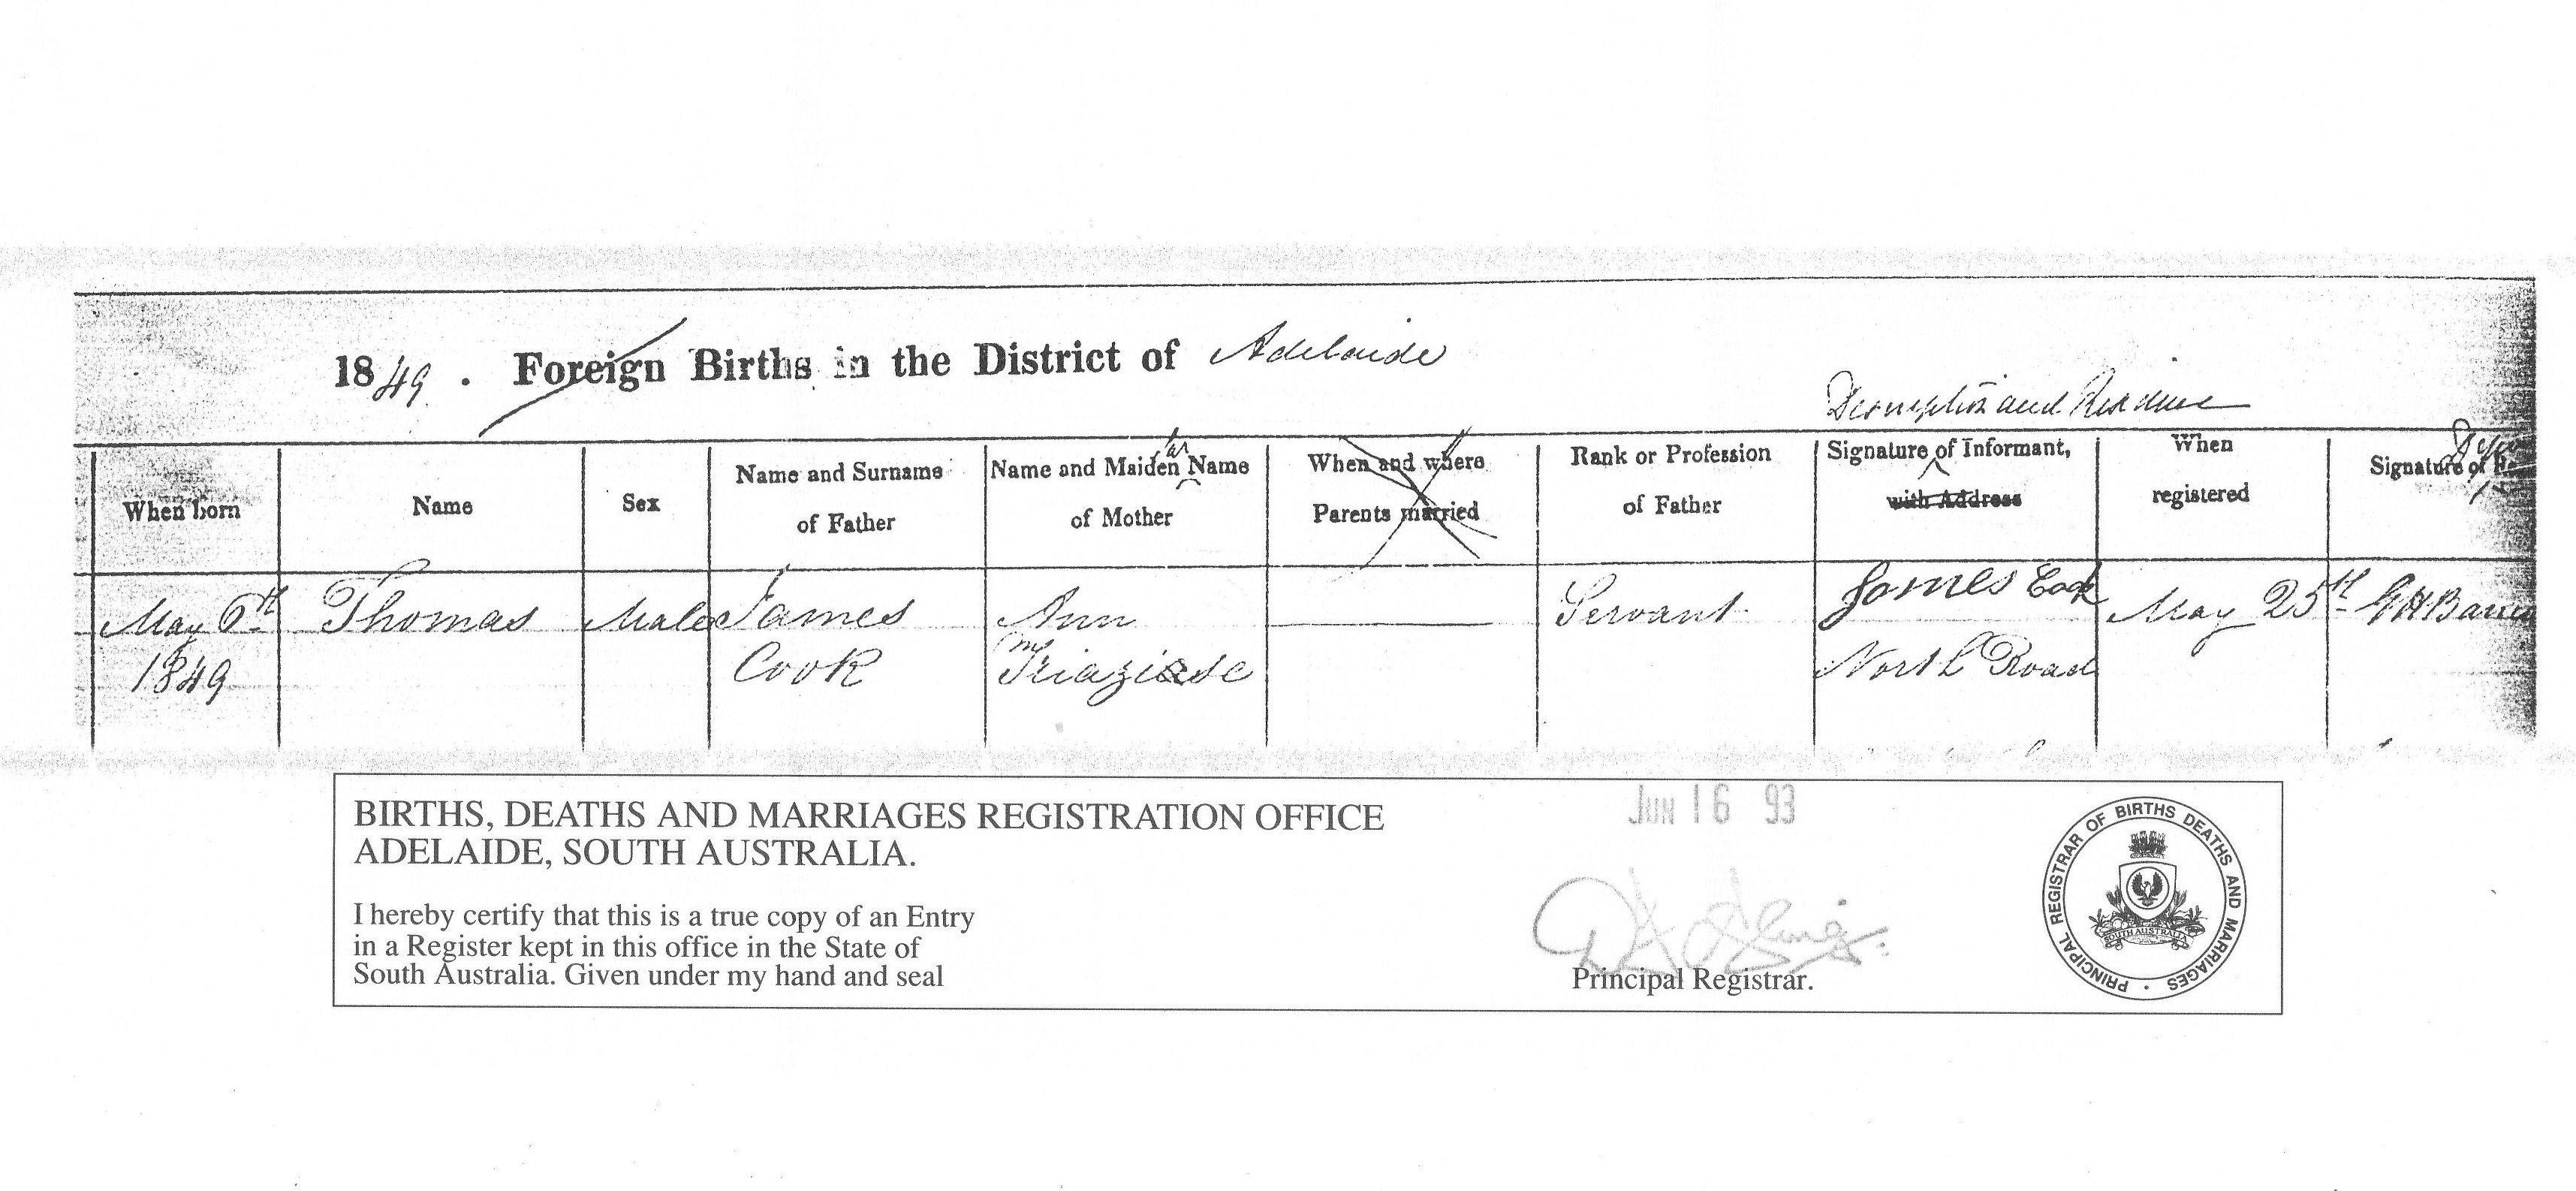 Thomas cooks birth certificate thomas was born 6 may 1849 in thomas cooks birth certificate thomas was born 6 may 1849 in south australia aiddatafo Gallery